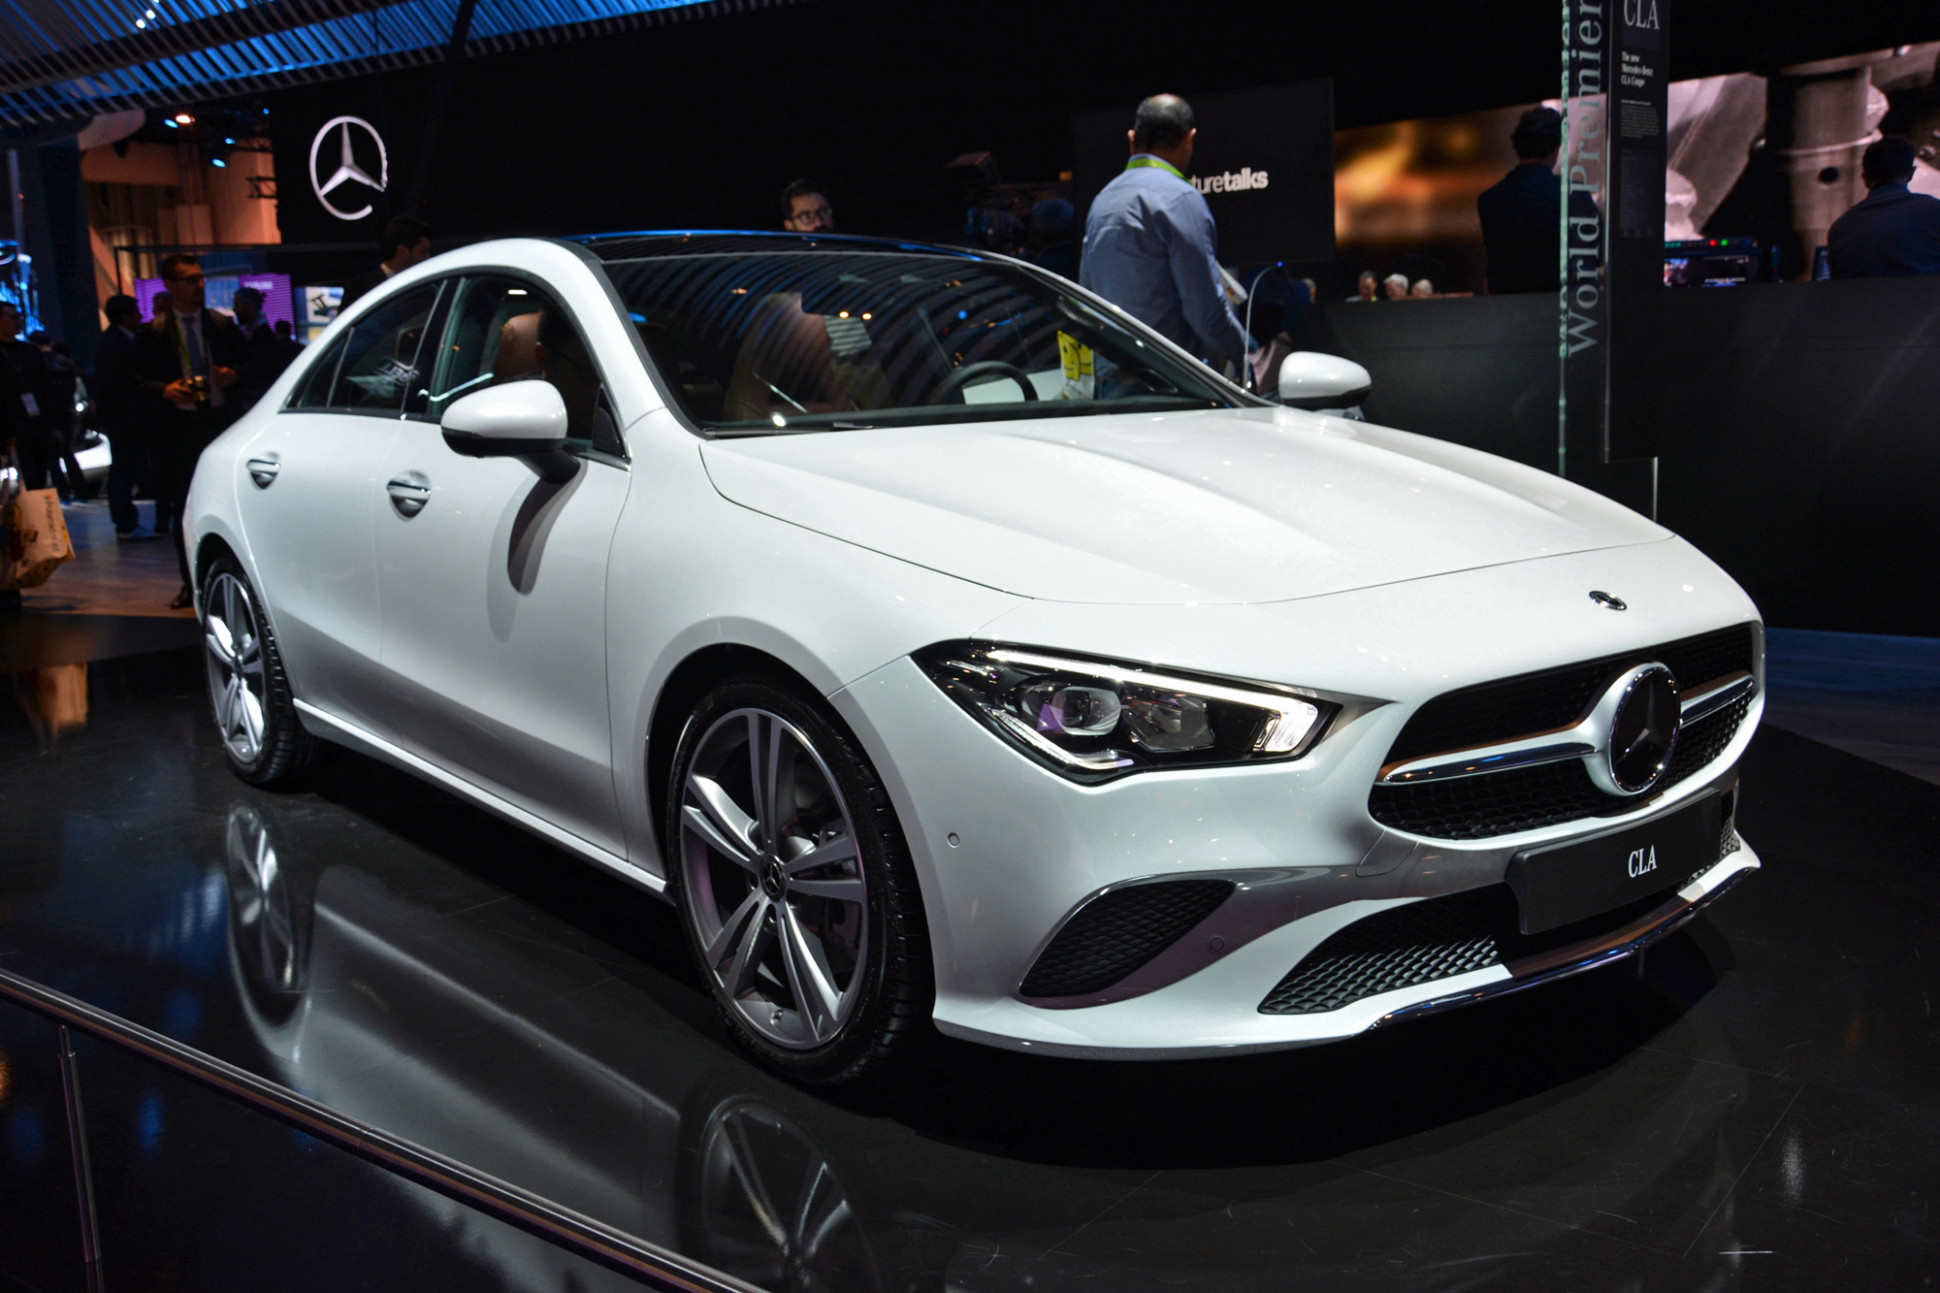 7 Mercedes-Benz CLA brings its svelte looks to CES - 2020 new mercedes cla